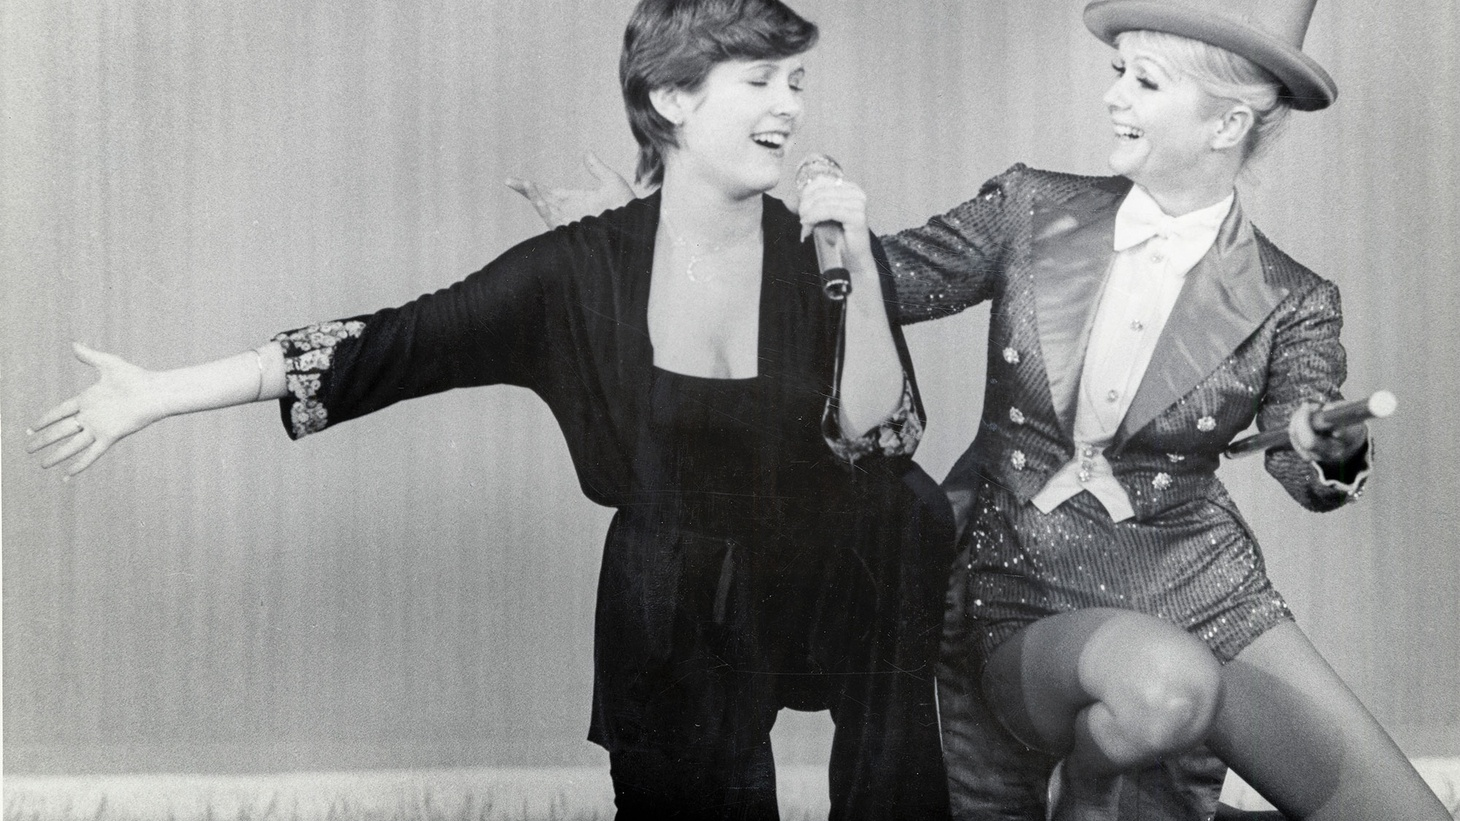 When documentarians Alexis Bloom and Fisher Stevens started working on Bright Lights: Starring Carrie Fisher and Debbie Reynolds, they could not have imagined it would end up being a posthumous tribute to both women. Originally set to air in March, HBO has moved up the film's premiere to January 7.